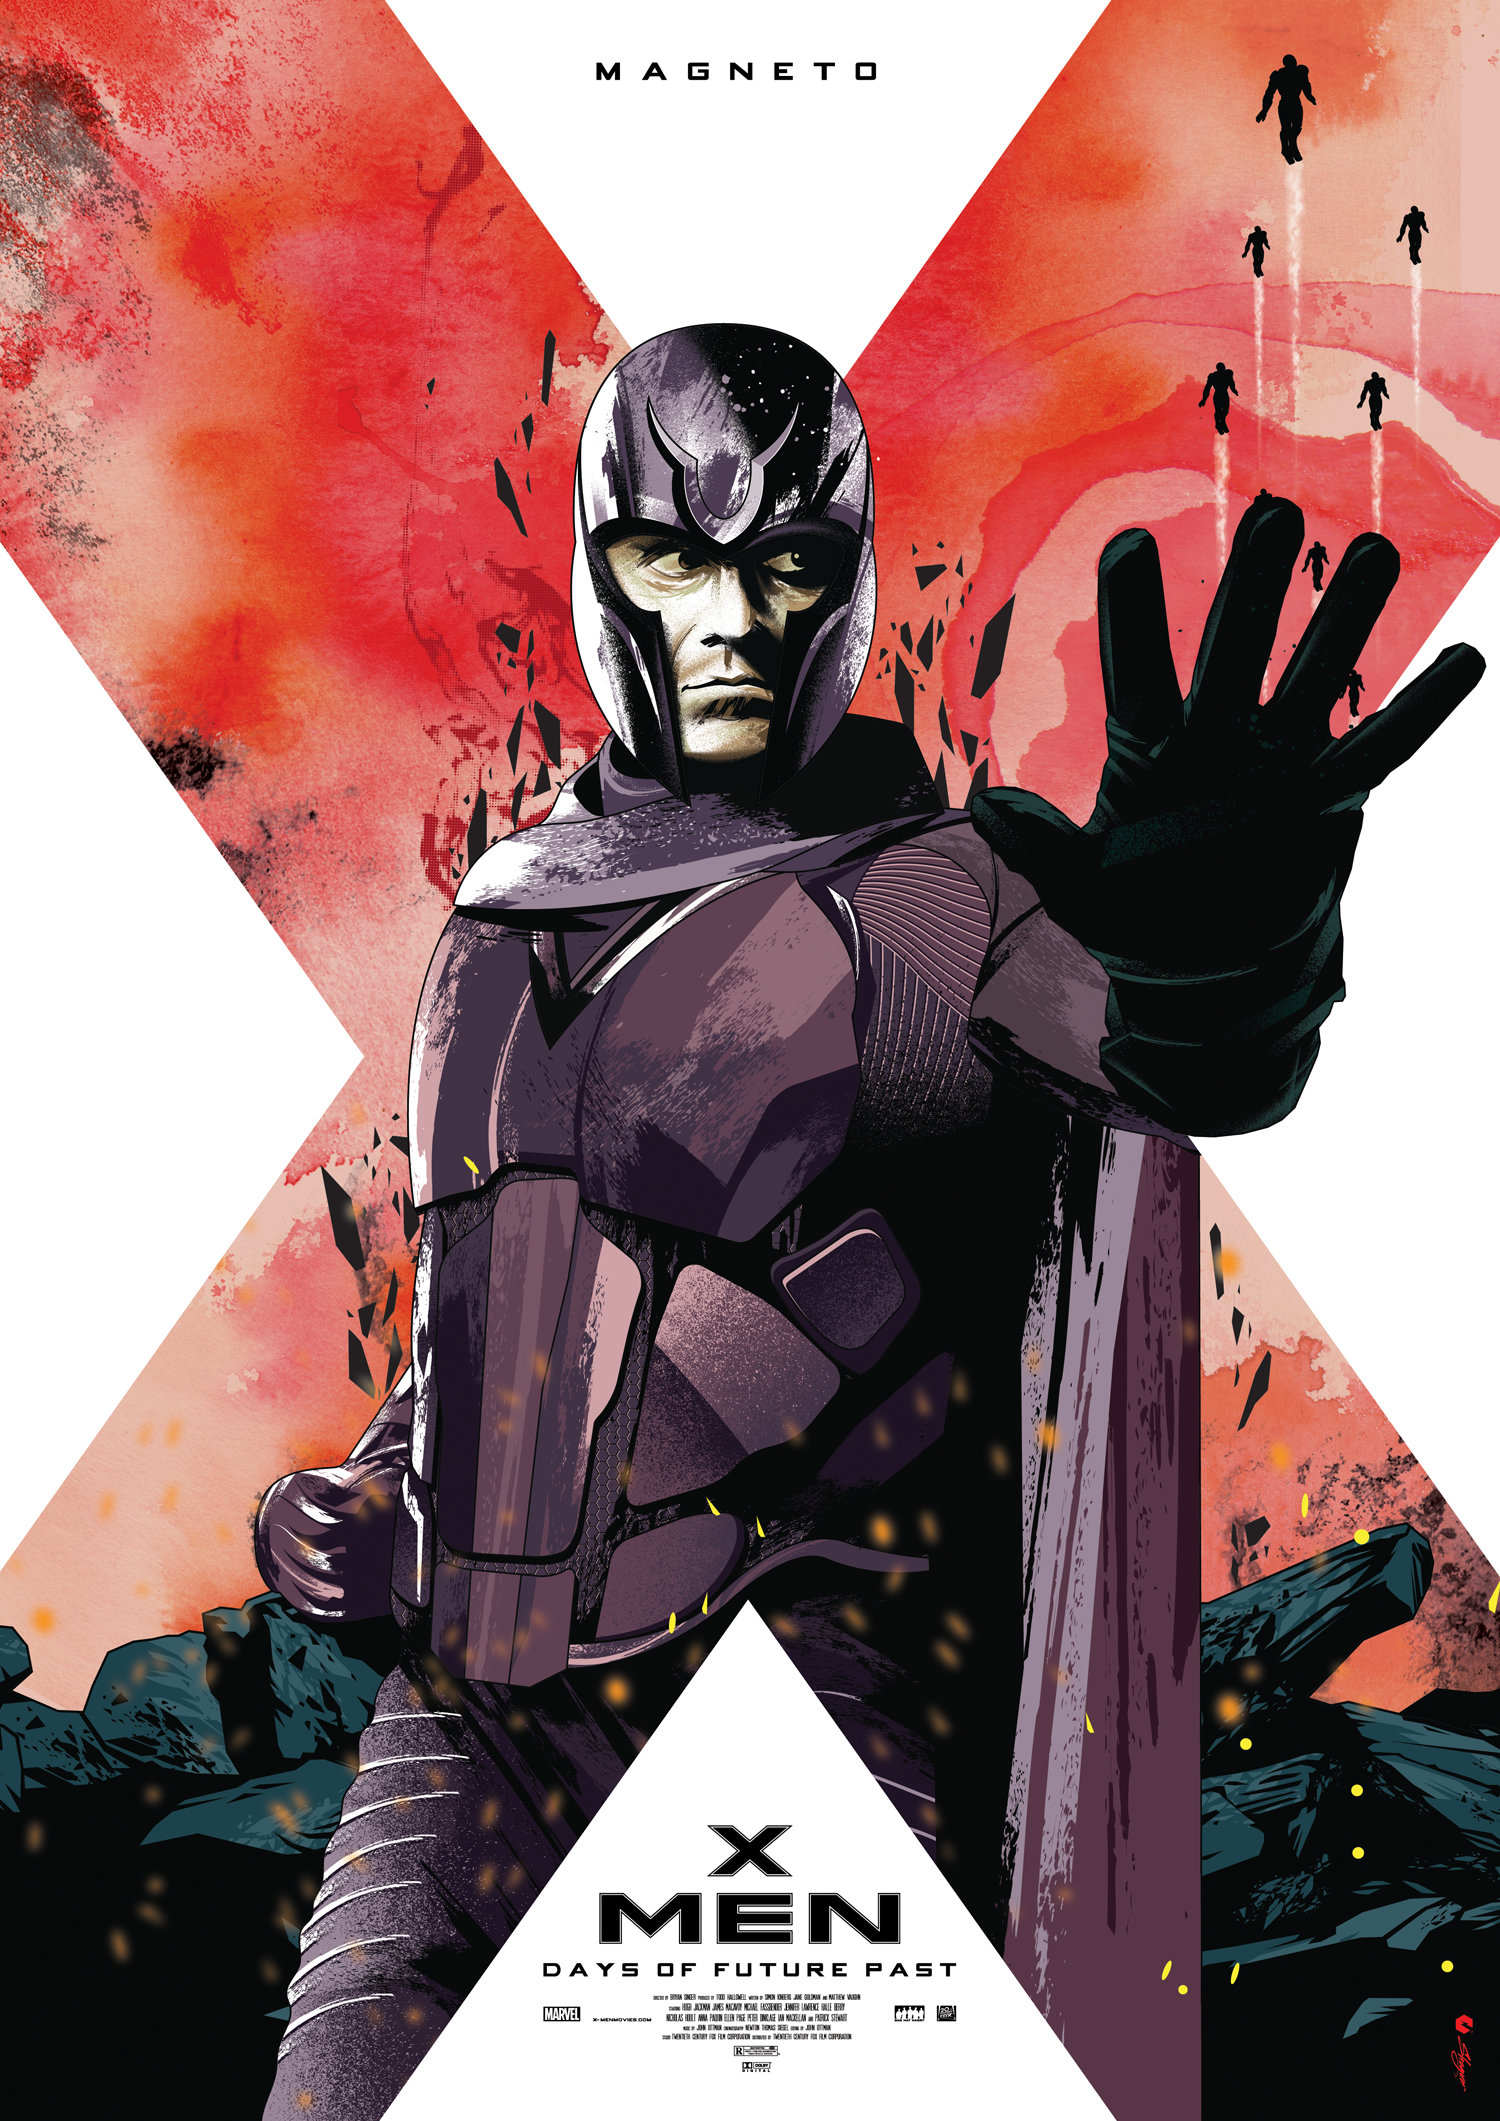 the gallery for gt x men days of future past poster magneto